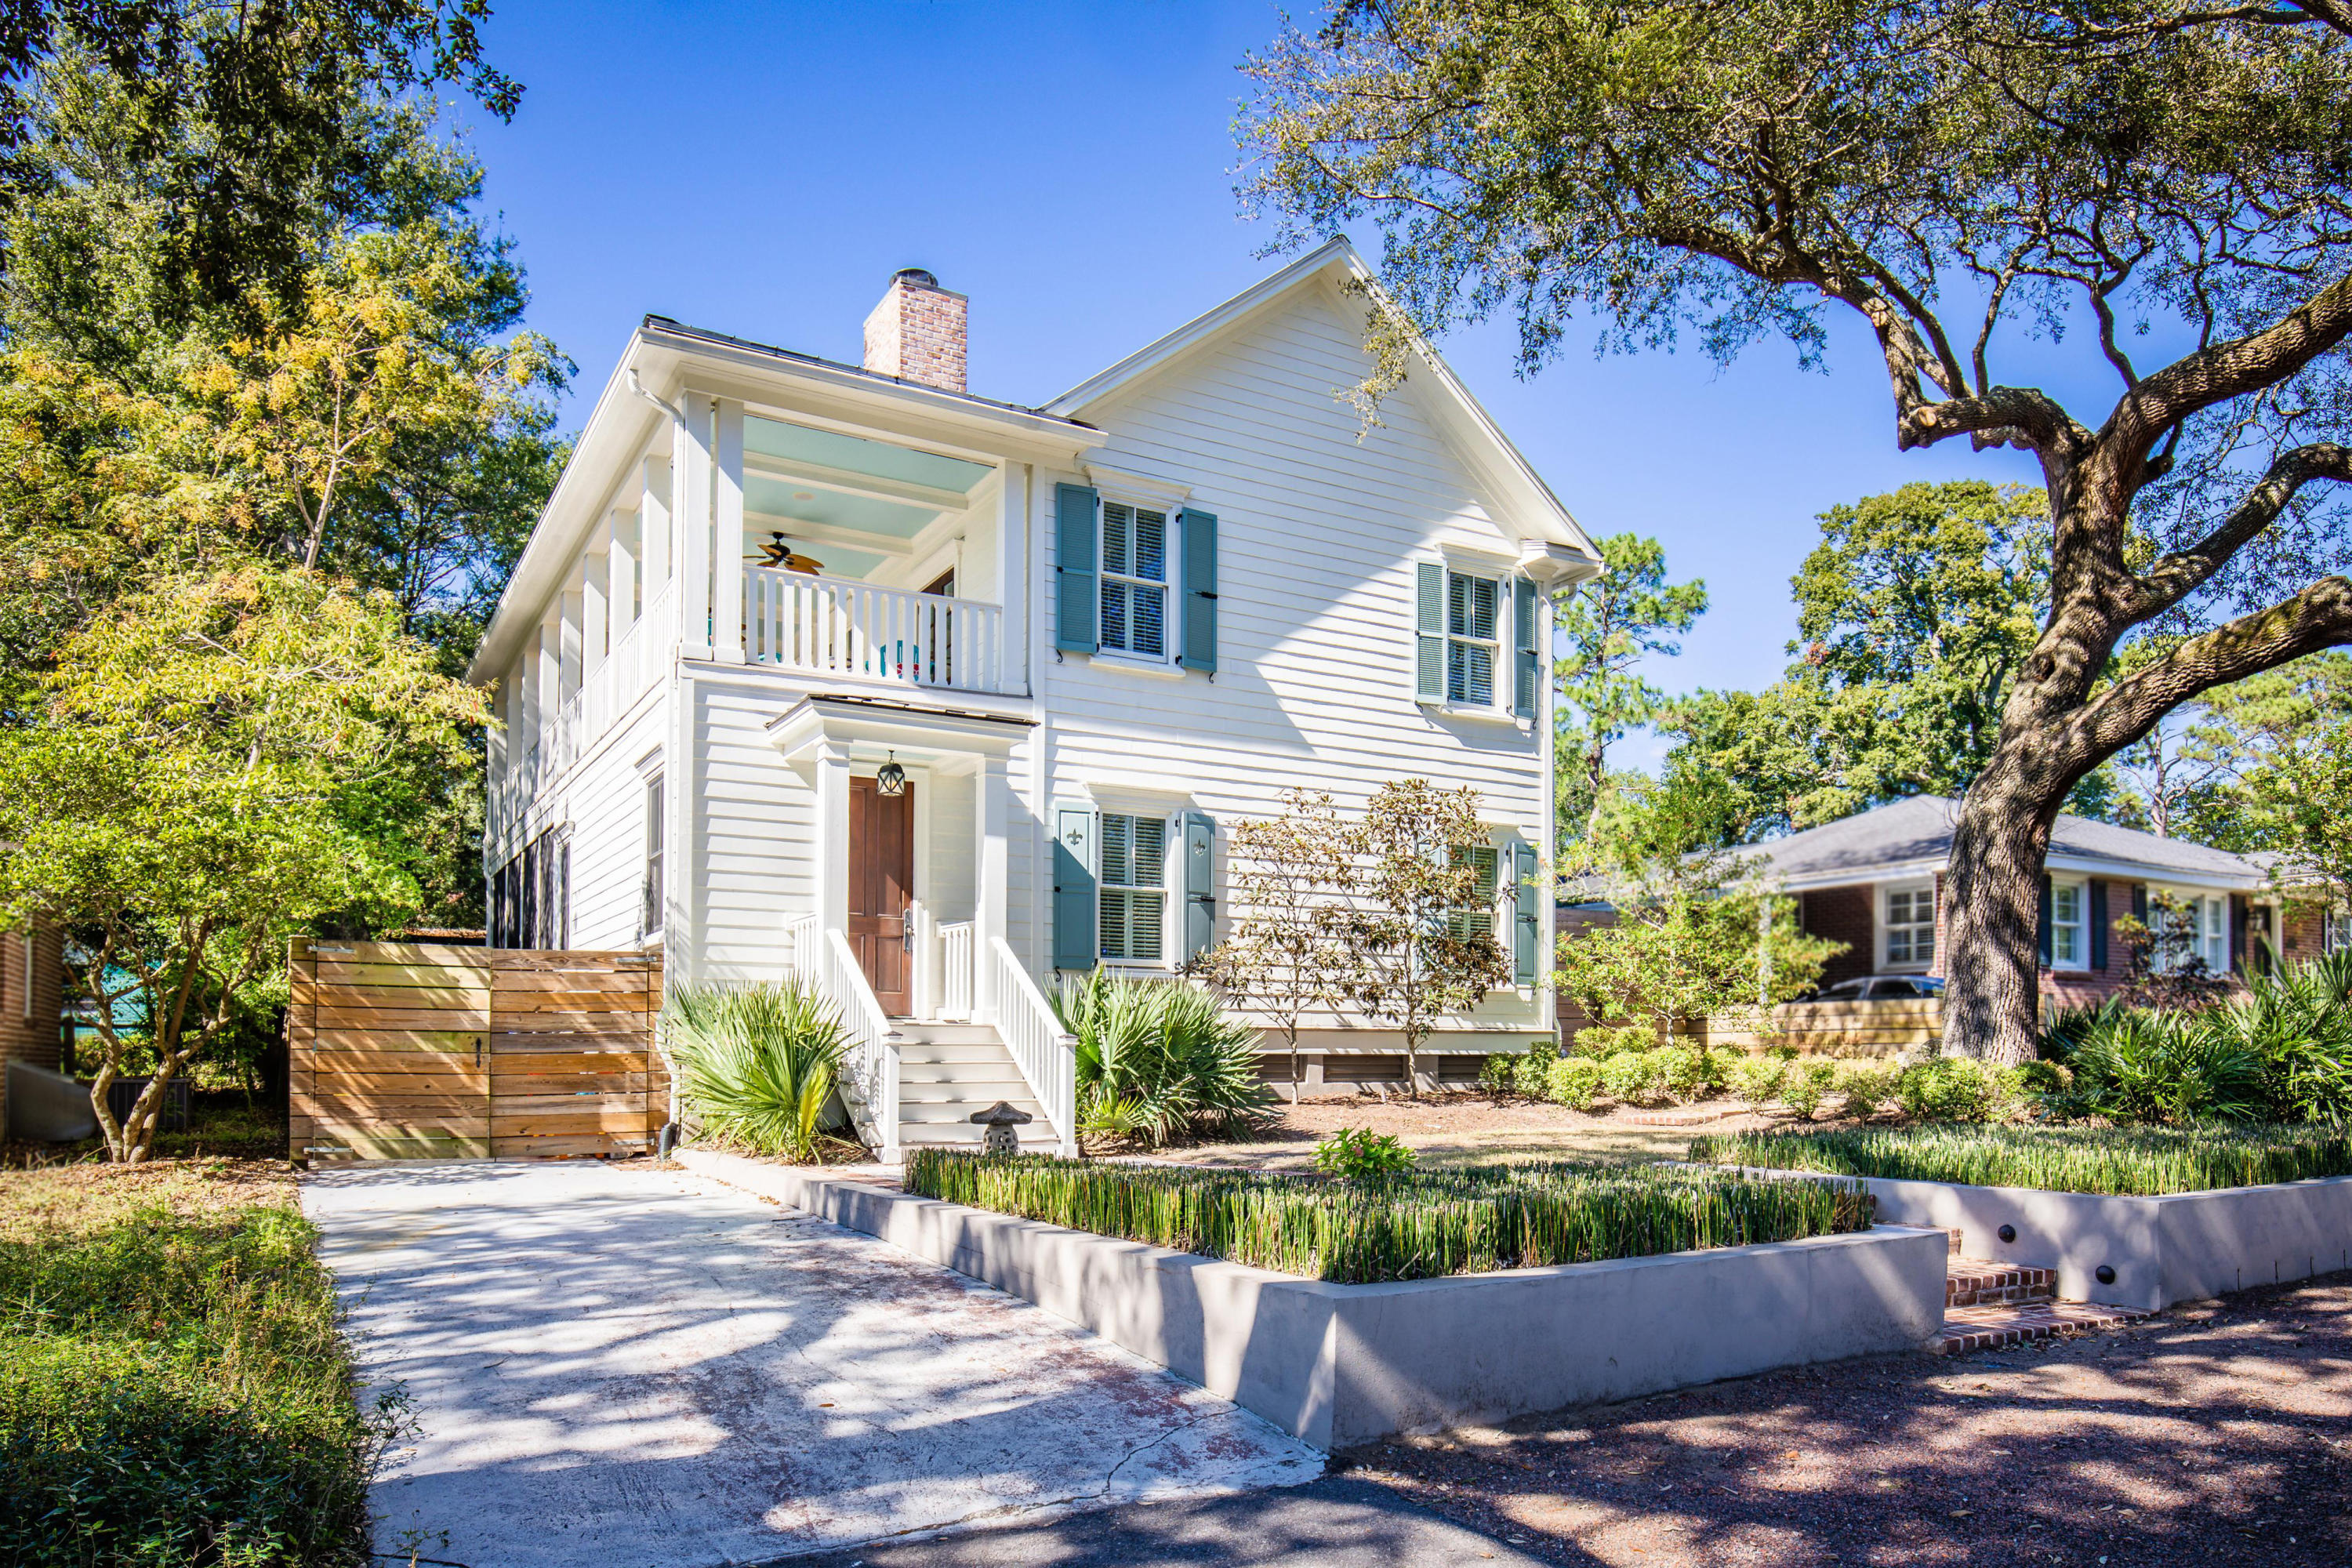 Old Mt Pleasant Homes For Sale - 512 Ruby, Mount Pleasant, SC - 31